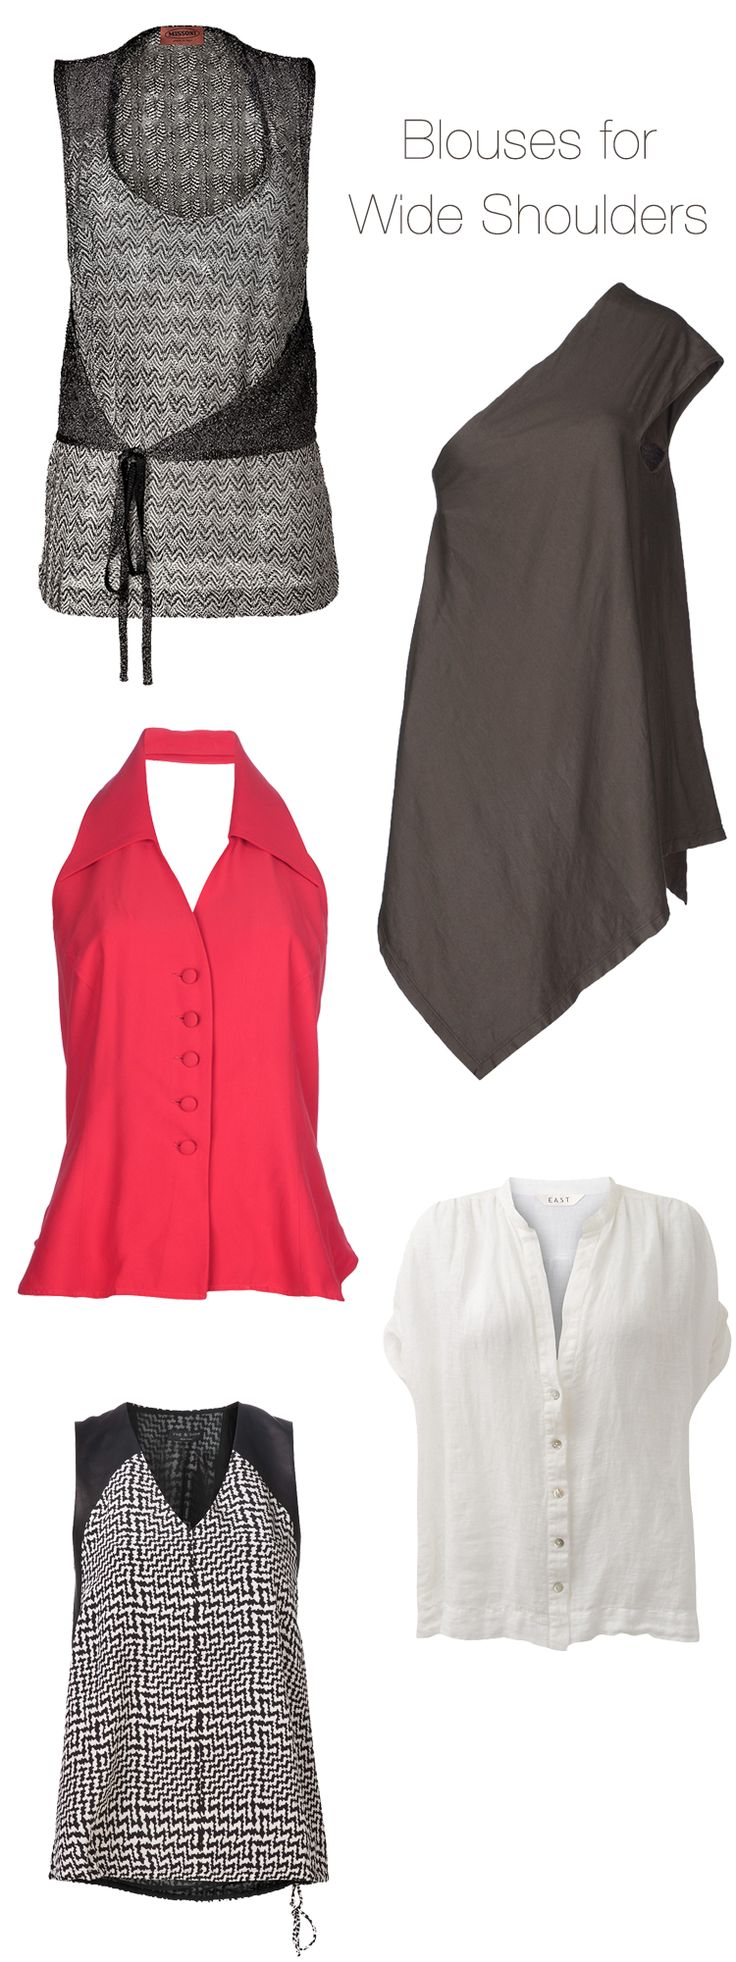 flattering blouses for broad shoulders - Google Search